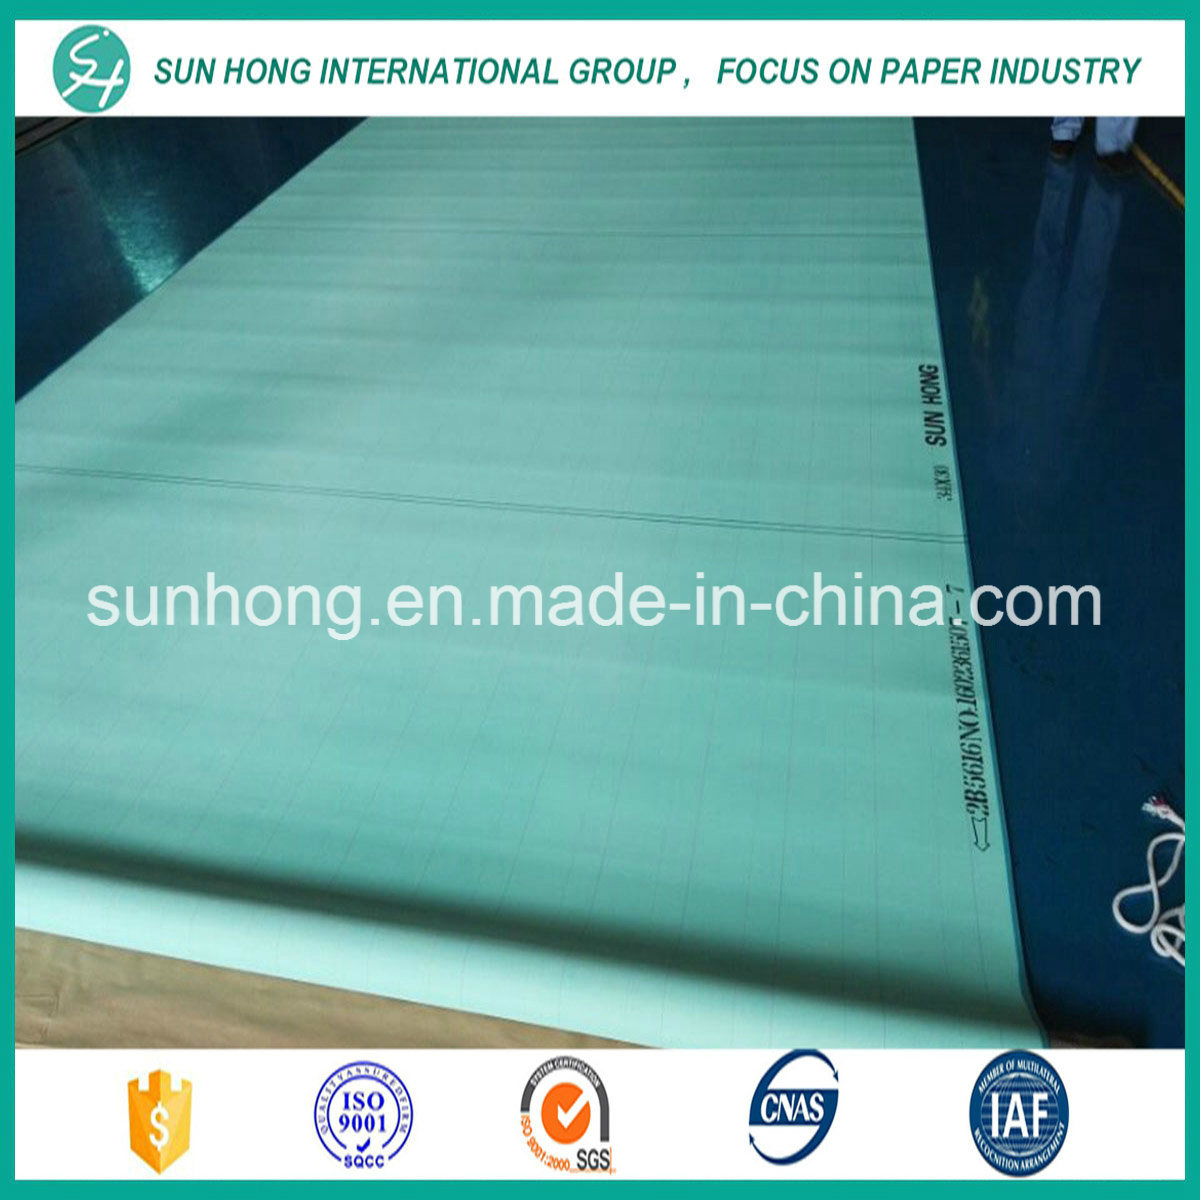 Polyester Double Layer Forming Fabric for Producing Newsprint Paper